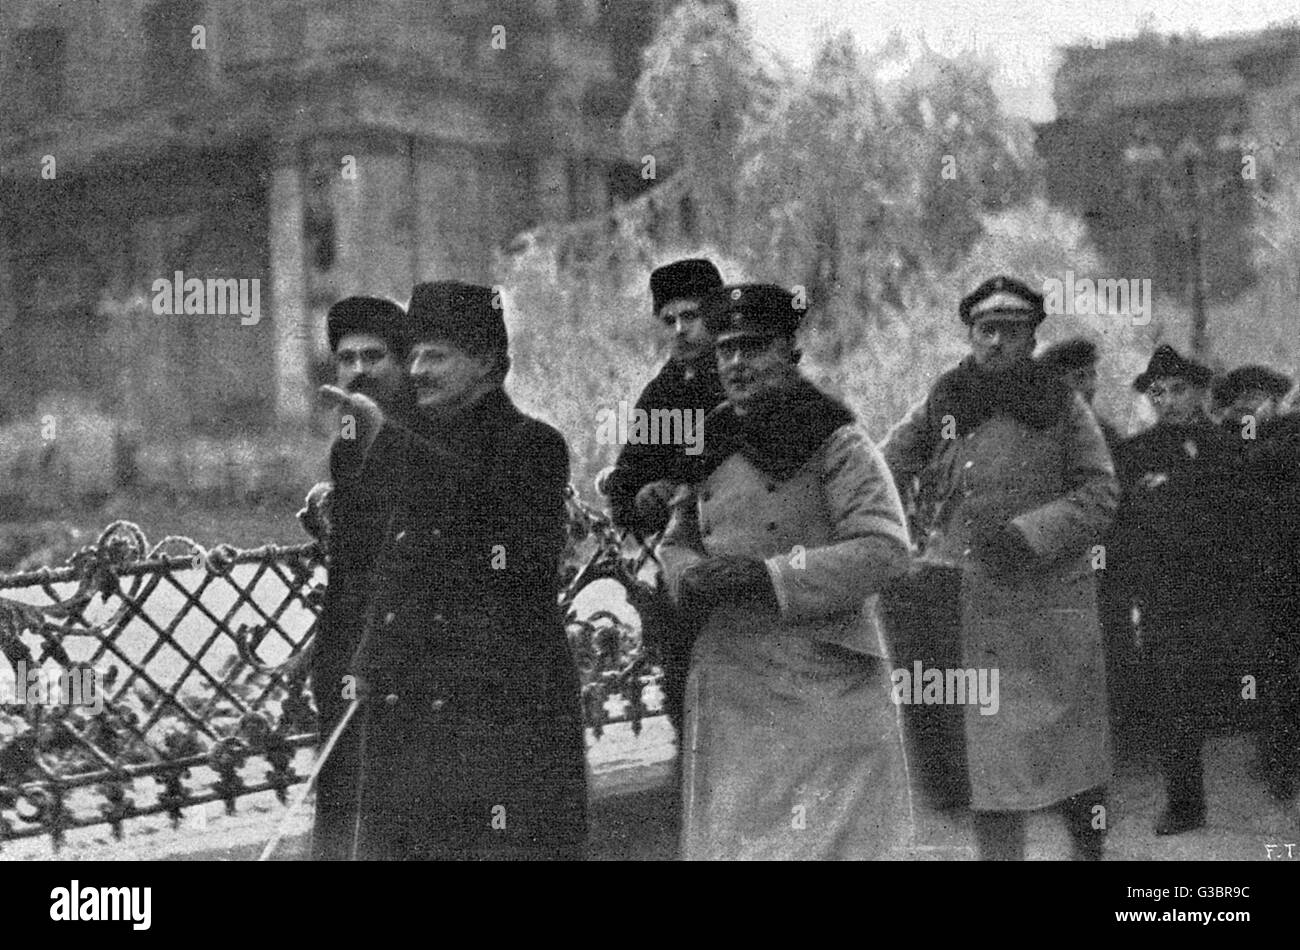 LEON TROTSKY Russian statesman, at Warsaw  1919 during the peace of  Brest-Litovsk - he is nearest  camera in foreground. - Stock Image